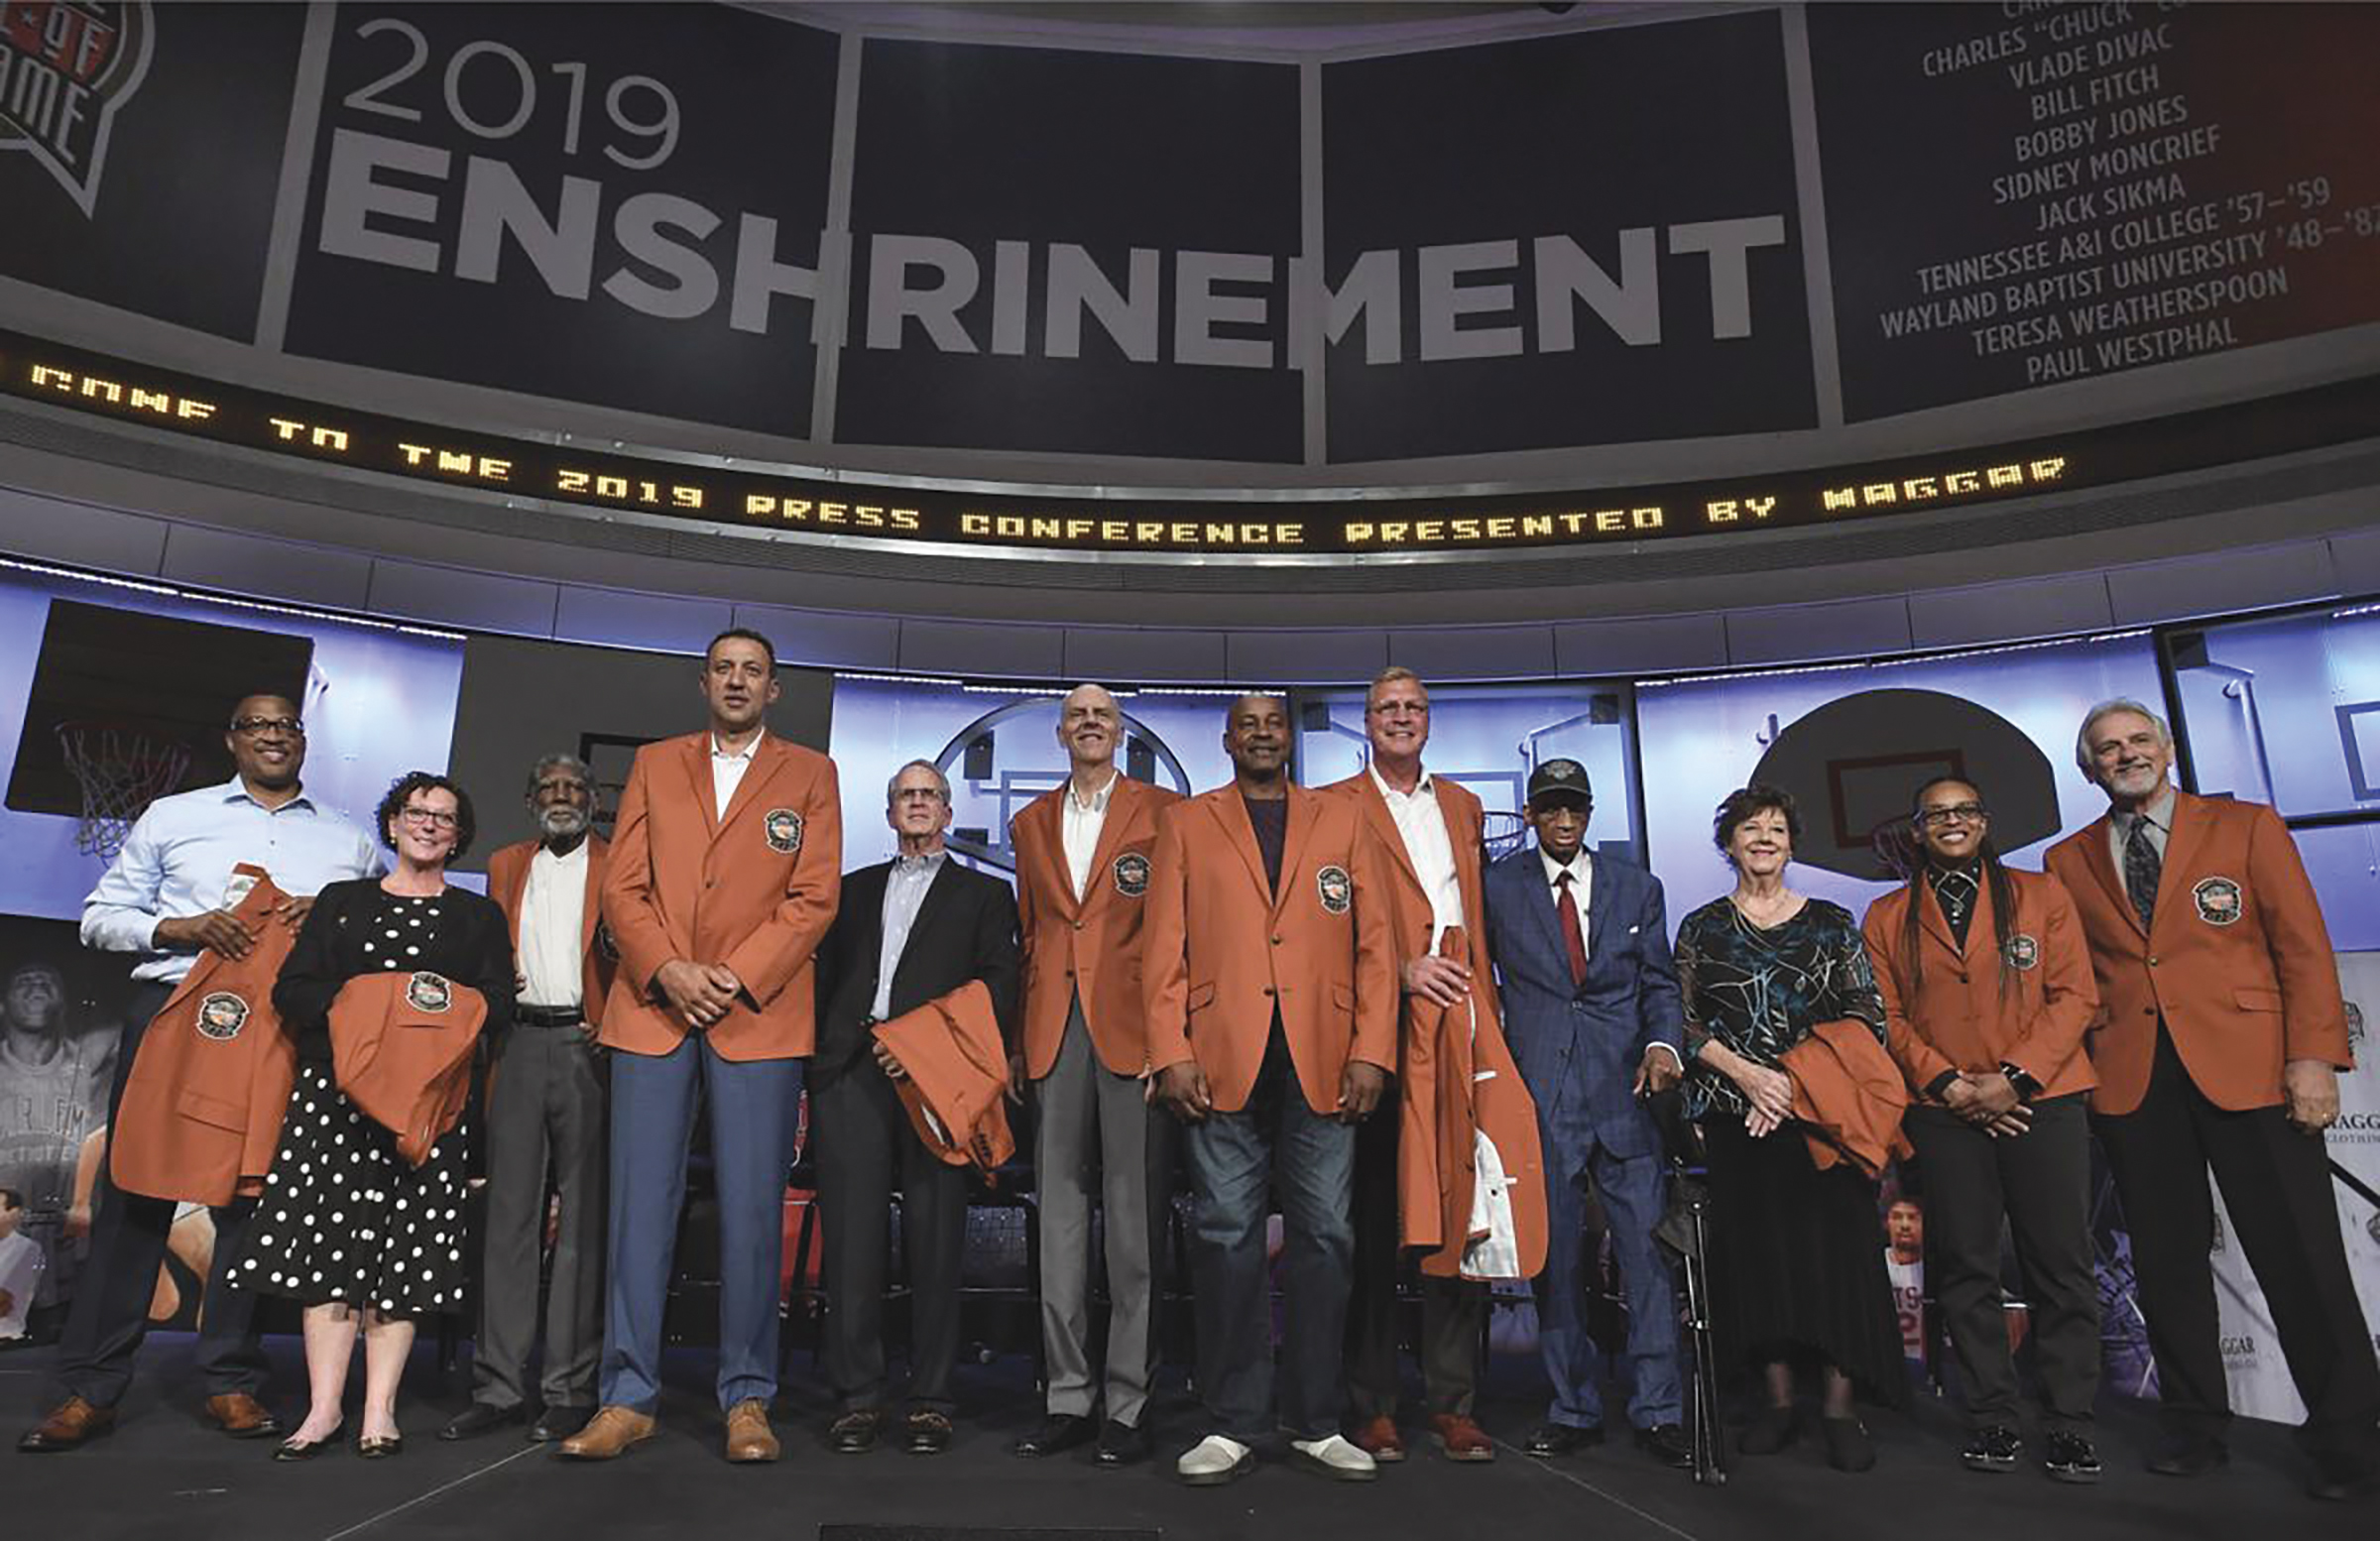 Class of 2019 inductees into the Basketball Hall of Fame, from left to right, Chuck Cooper III, accepting on behalf of his late father Chuck Cooper, Susan Braun, accepting on behalf of her later father Carl Braun, Al Attles,Vlade Divac, Ron Coville accepting on behalf of his father-in-law, Bill Fitch, Bobby Jones, Sidney Moncrief, Jack Sikma, Dick Barnett for Tennessee A&I, Linda Price for Wayland Baptist, Teresa Weatherspoon, and Paul Westphal, pose for a photo during a news conference at the Naismith Memorial Basketball Hall of Fame, Thursday, Sept. 5, 2019, in Springfield, Mass. (AP Photo/Jessica Hill)